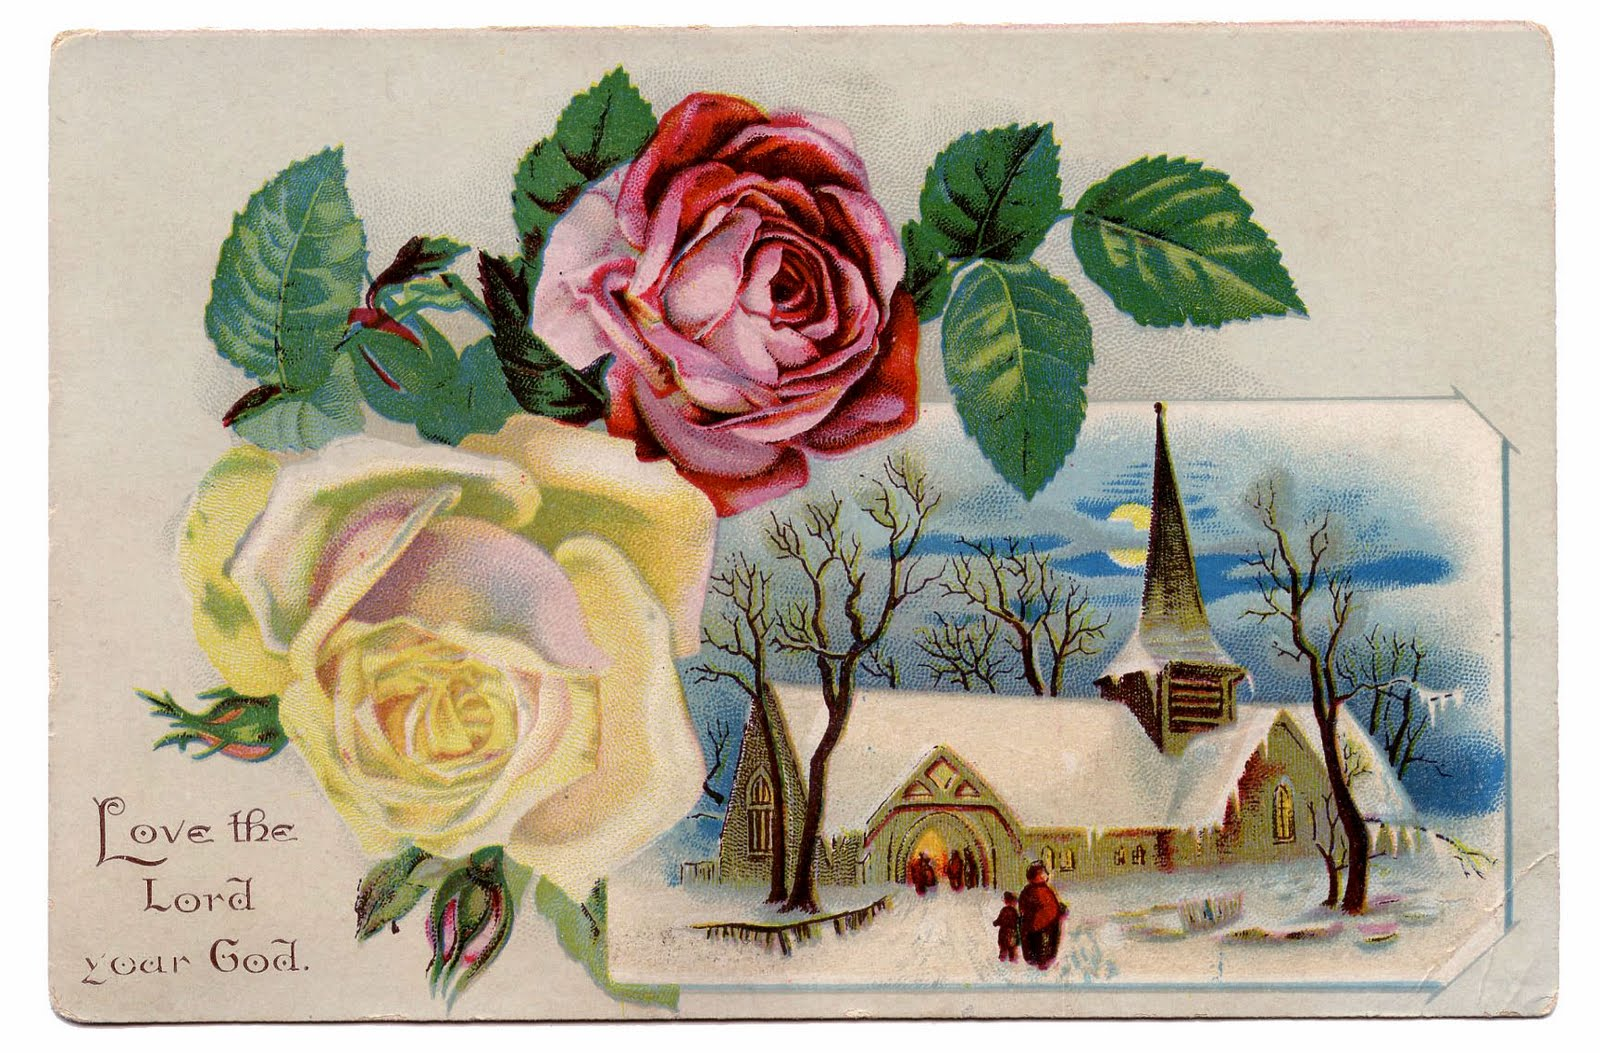 Years clipart winter. Vintage clip art church